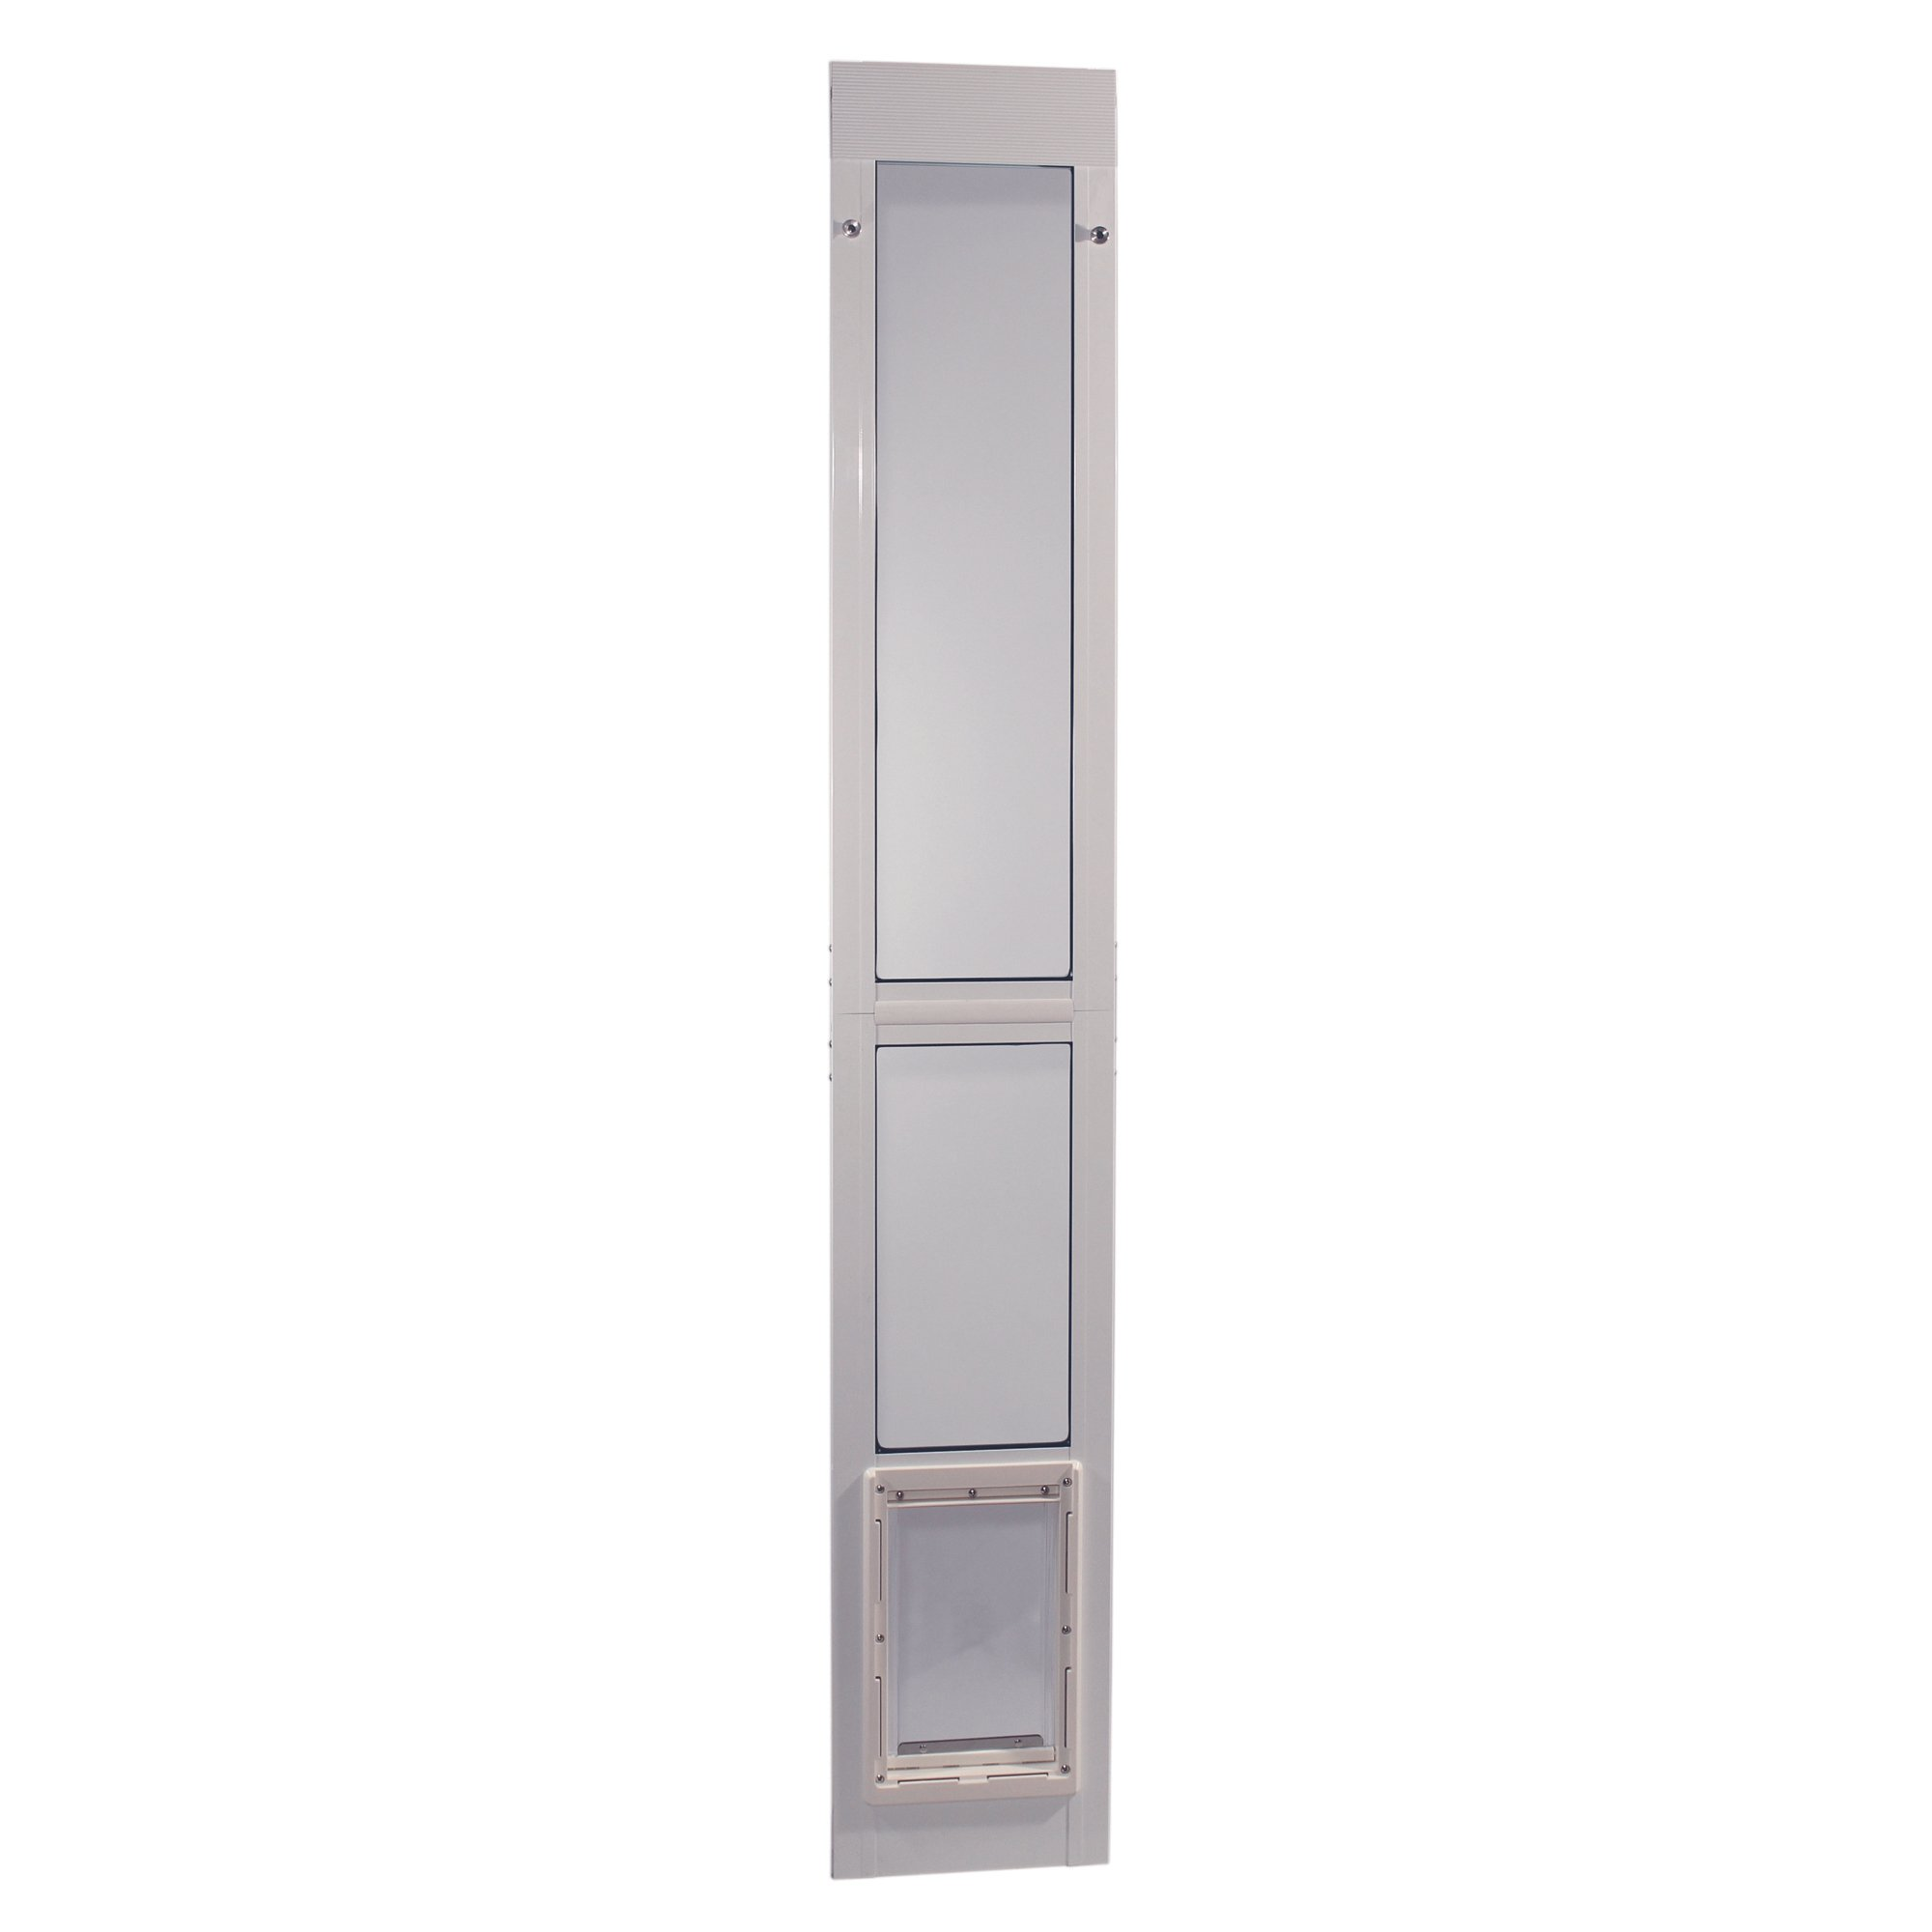 Ideal Pet Products Aluminum Modular Patio Pet Door, White, Medium, 7'' x 11.25'' Flap Size by Ideal Pet Products